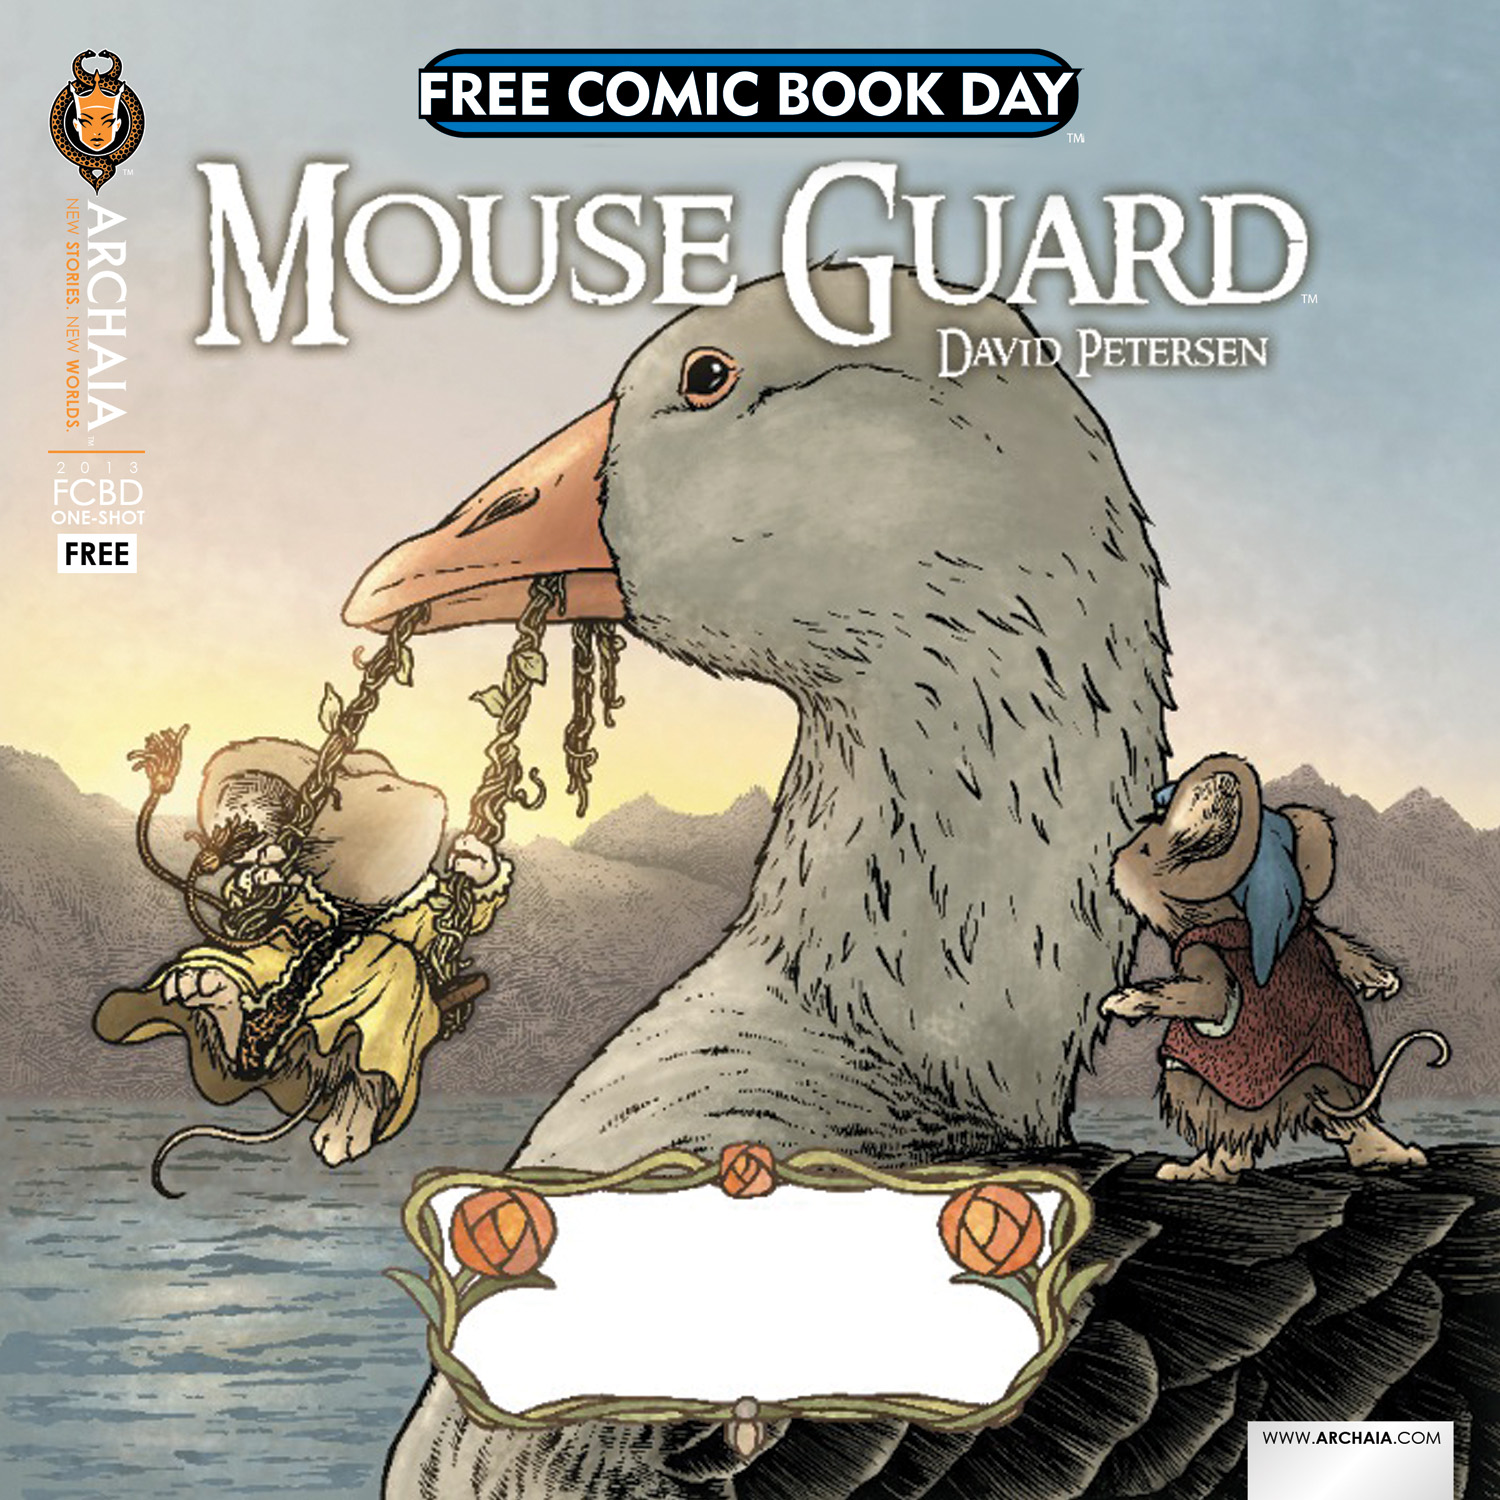 Free Comic Book Day 2013: Preview: Mouse Guard/Rust 2013 Free Comic Book Day Flip